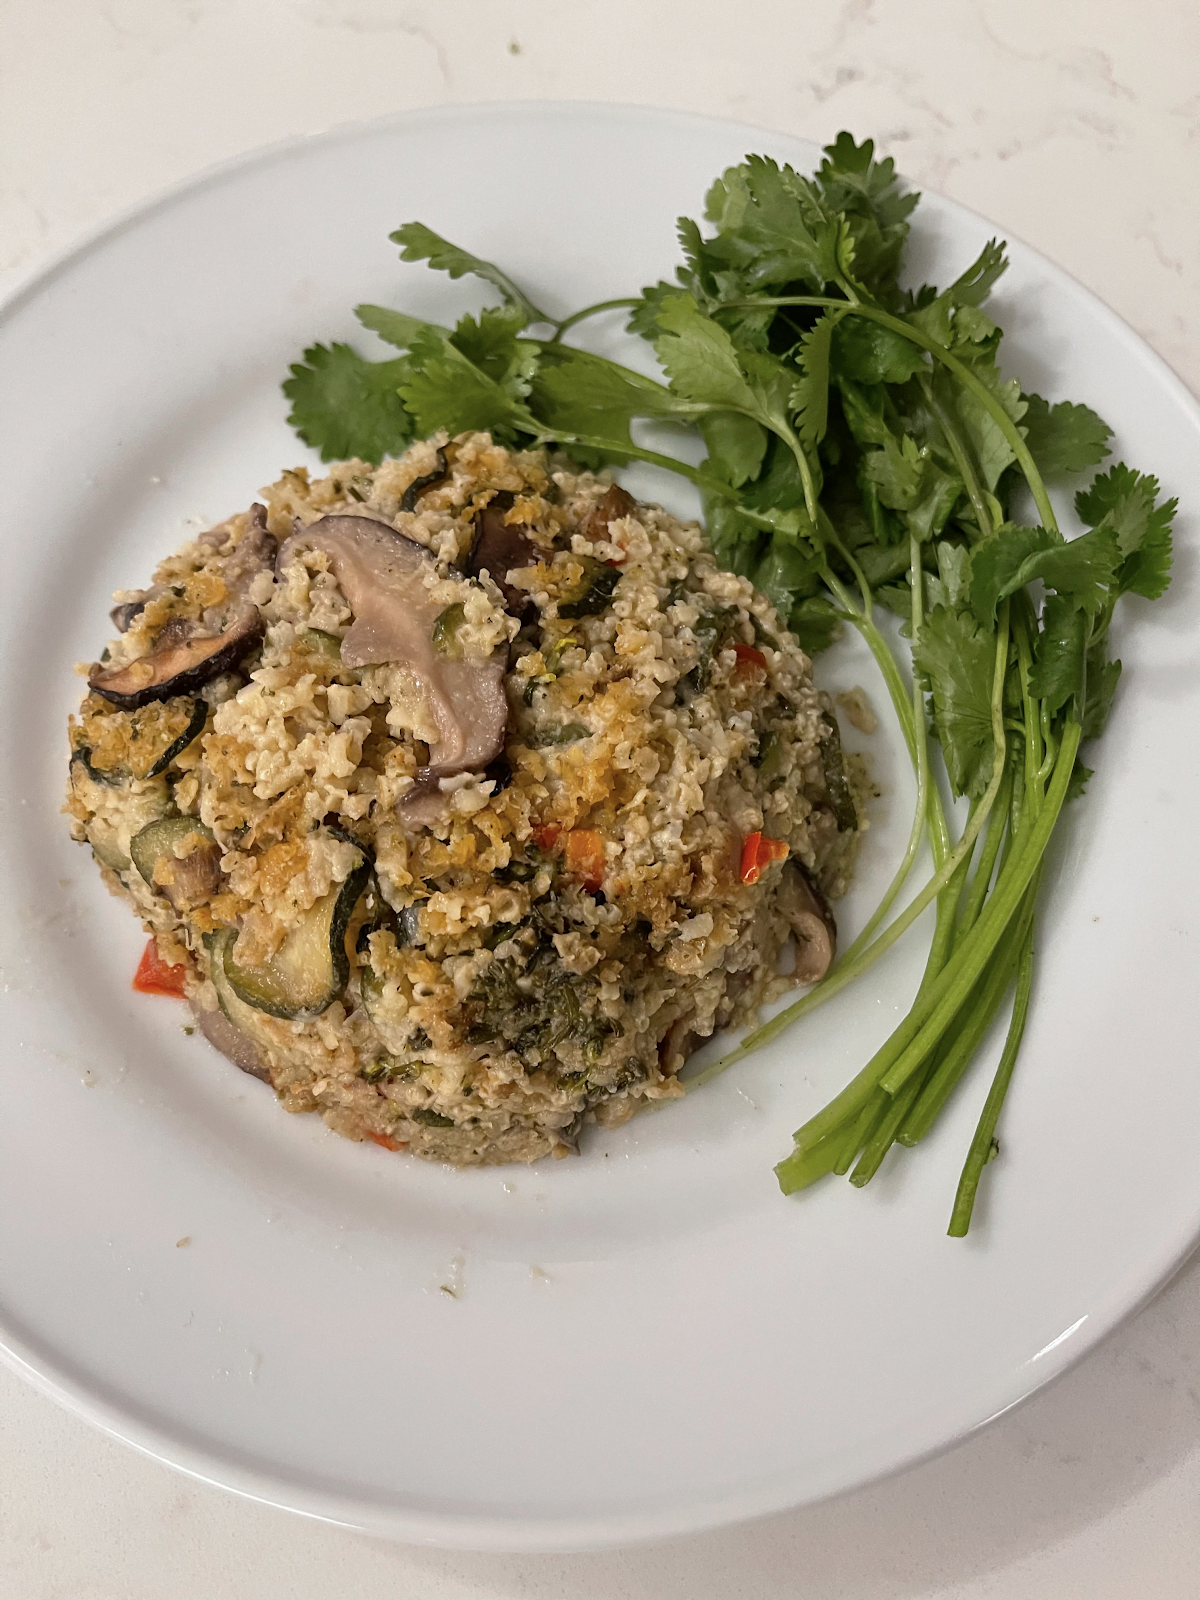 Body Ecology's guilt-free & good-for-your-gut millet casserole recipe